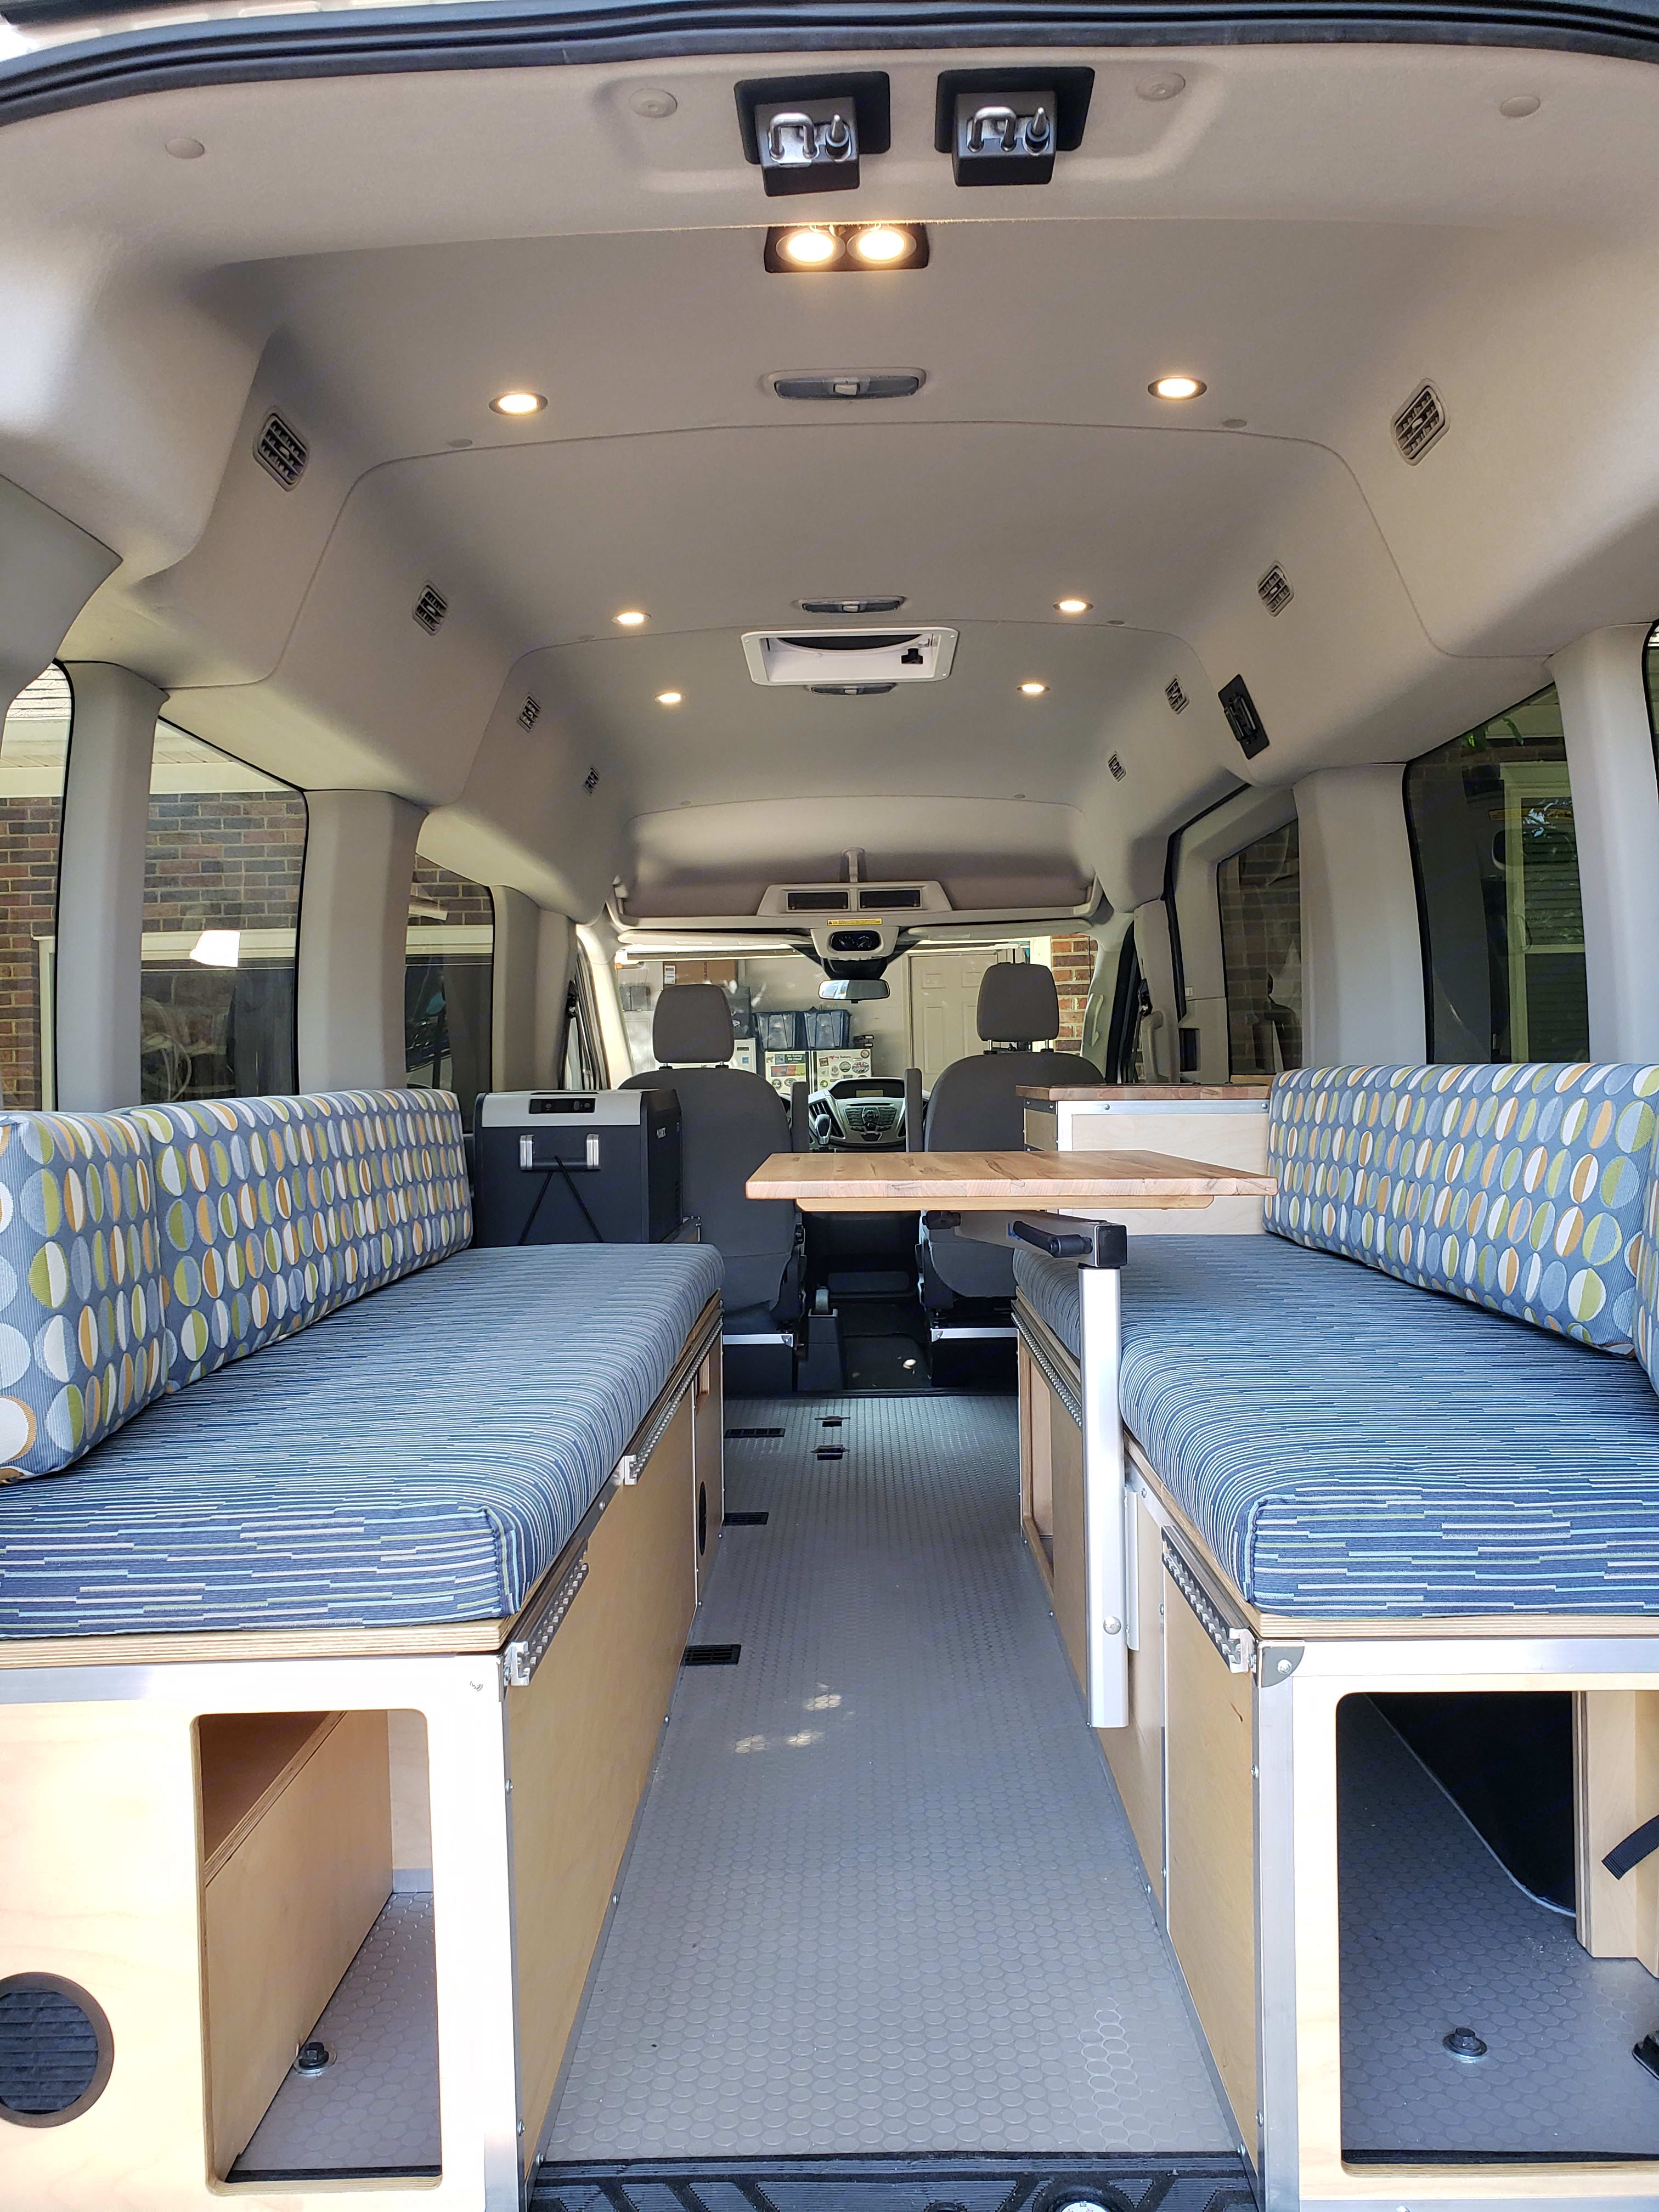 Rear View - Bench seats with storage below, converts to queen size bed.  Swivel lagun table.. Ford Transit 2016